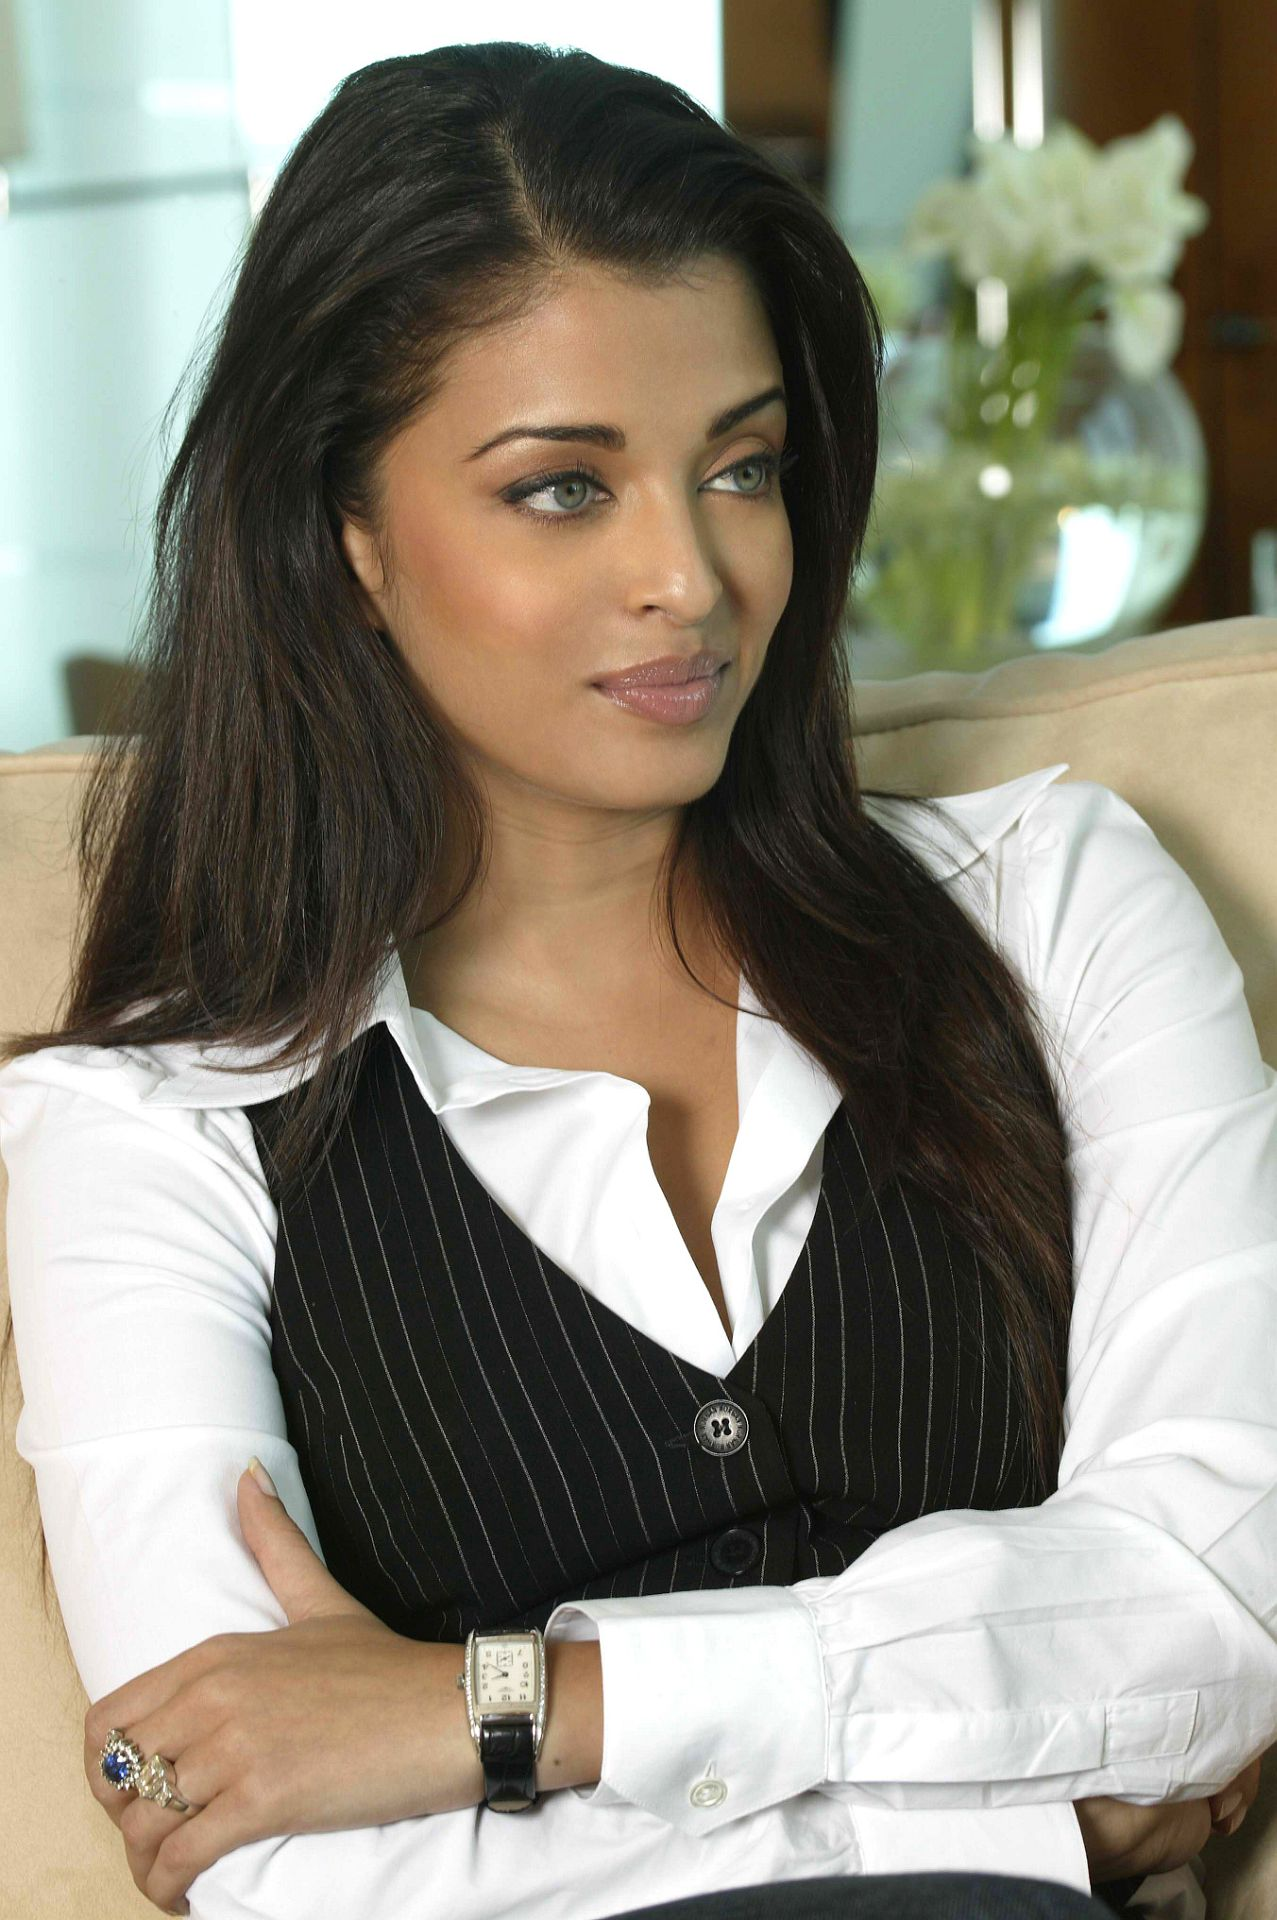 PHOTOS: Aishwarya' s Latest Photoshoot | Aishwarya Rai